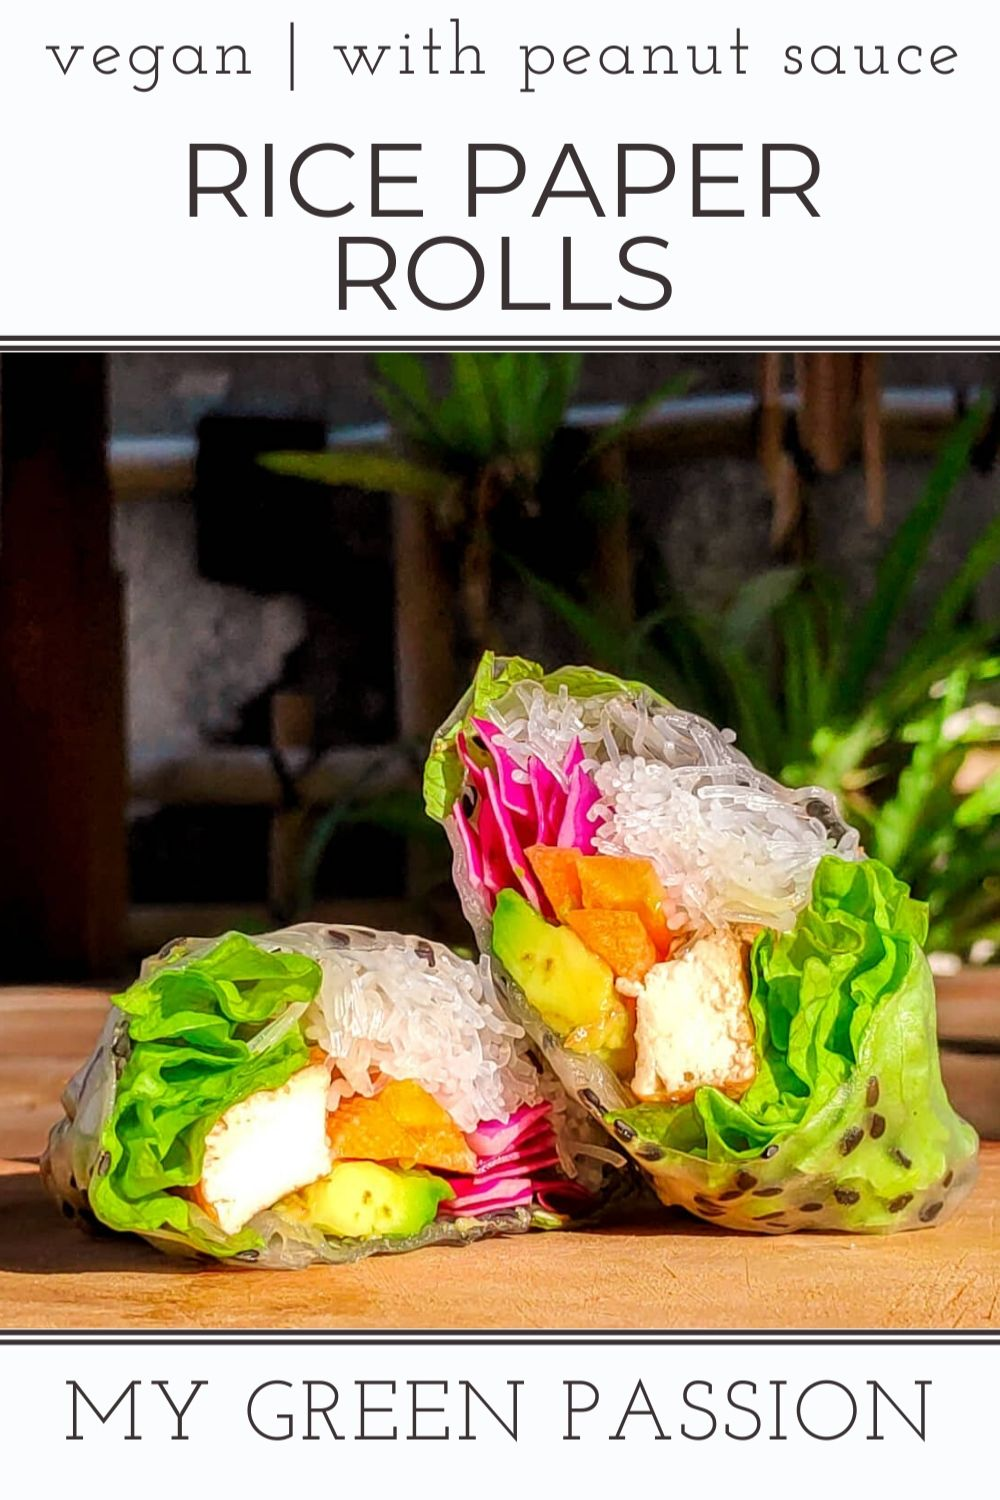 vegan summer rolls rainbow rice paper vegan with peanut sauce plant-based